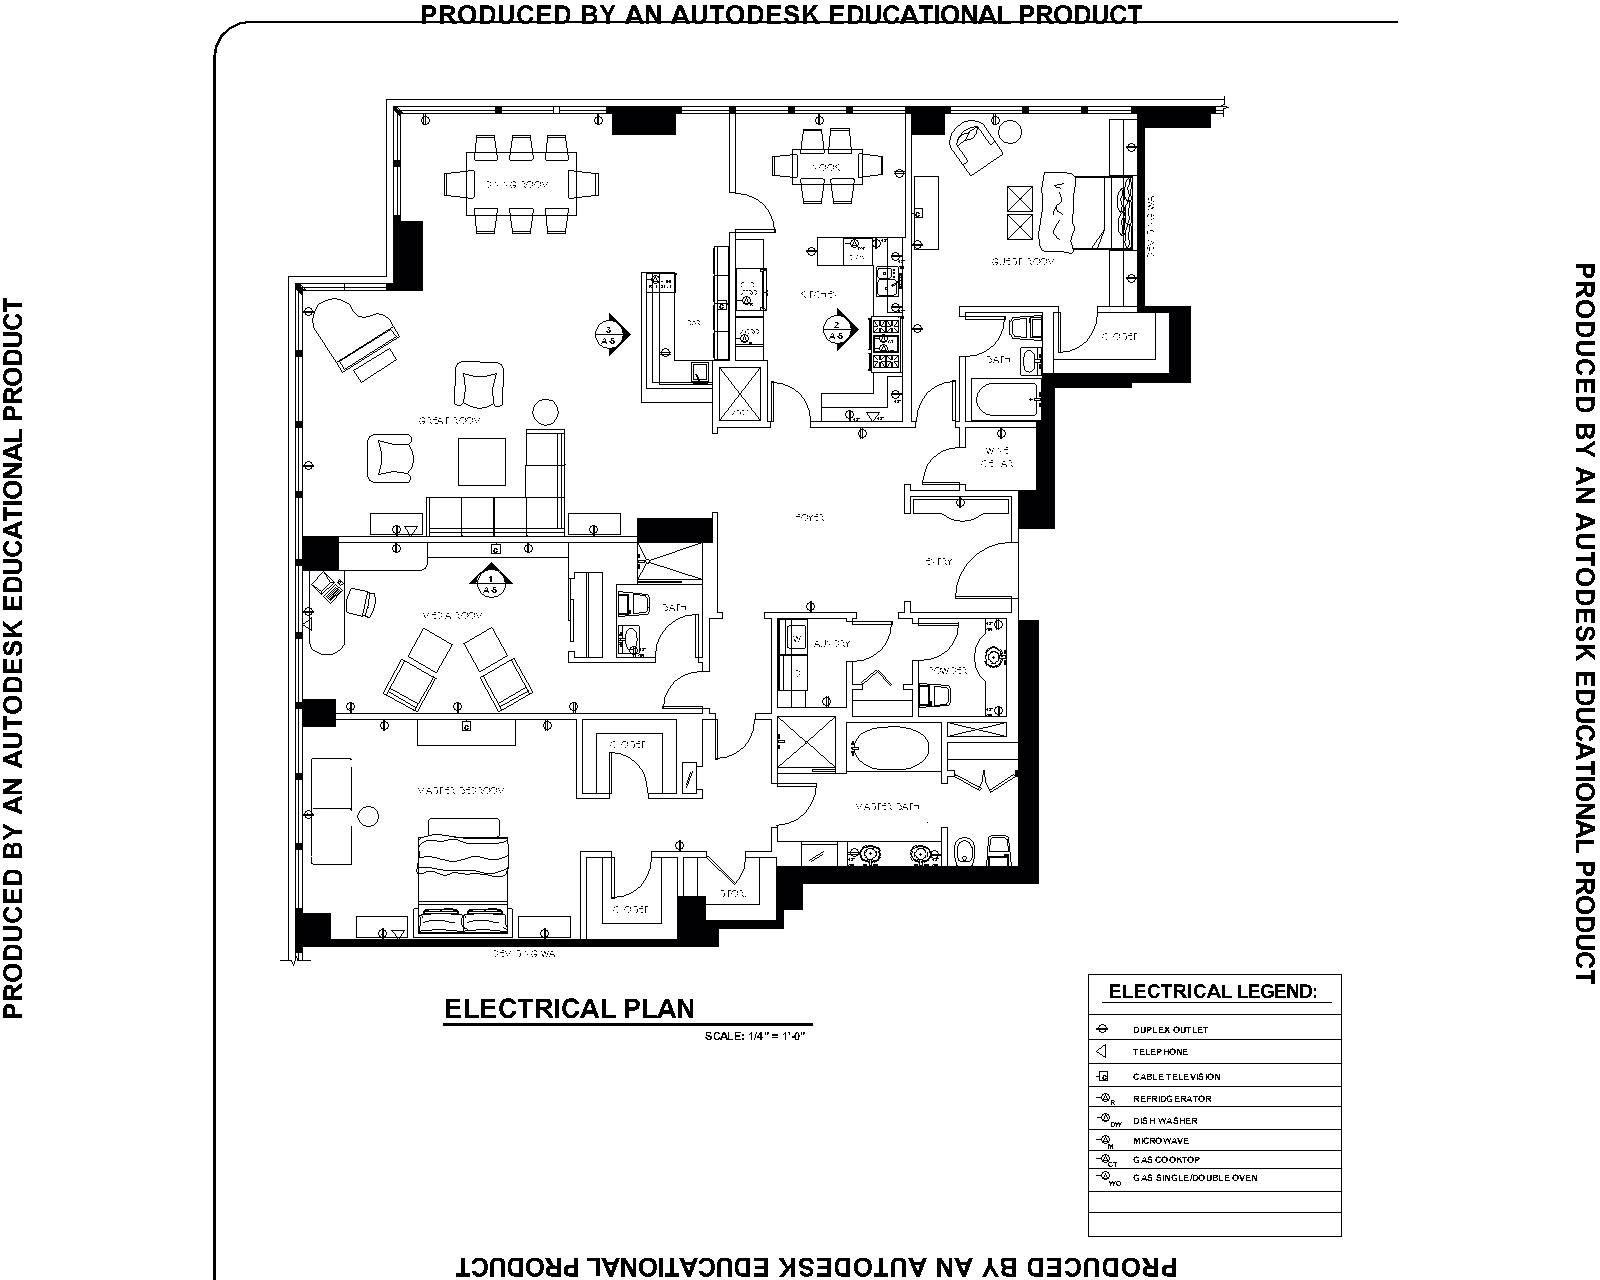 2 storey residential electrical plan electrical plan for residential #15